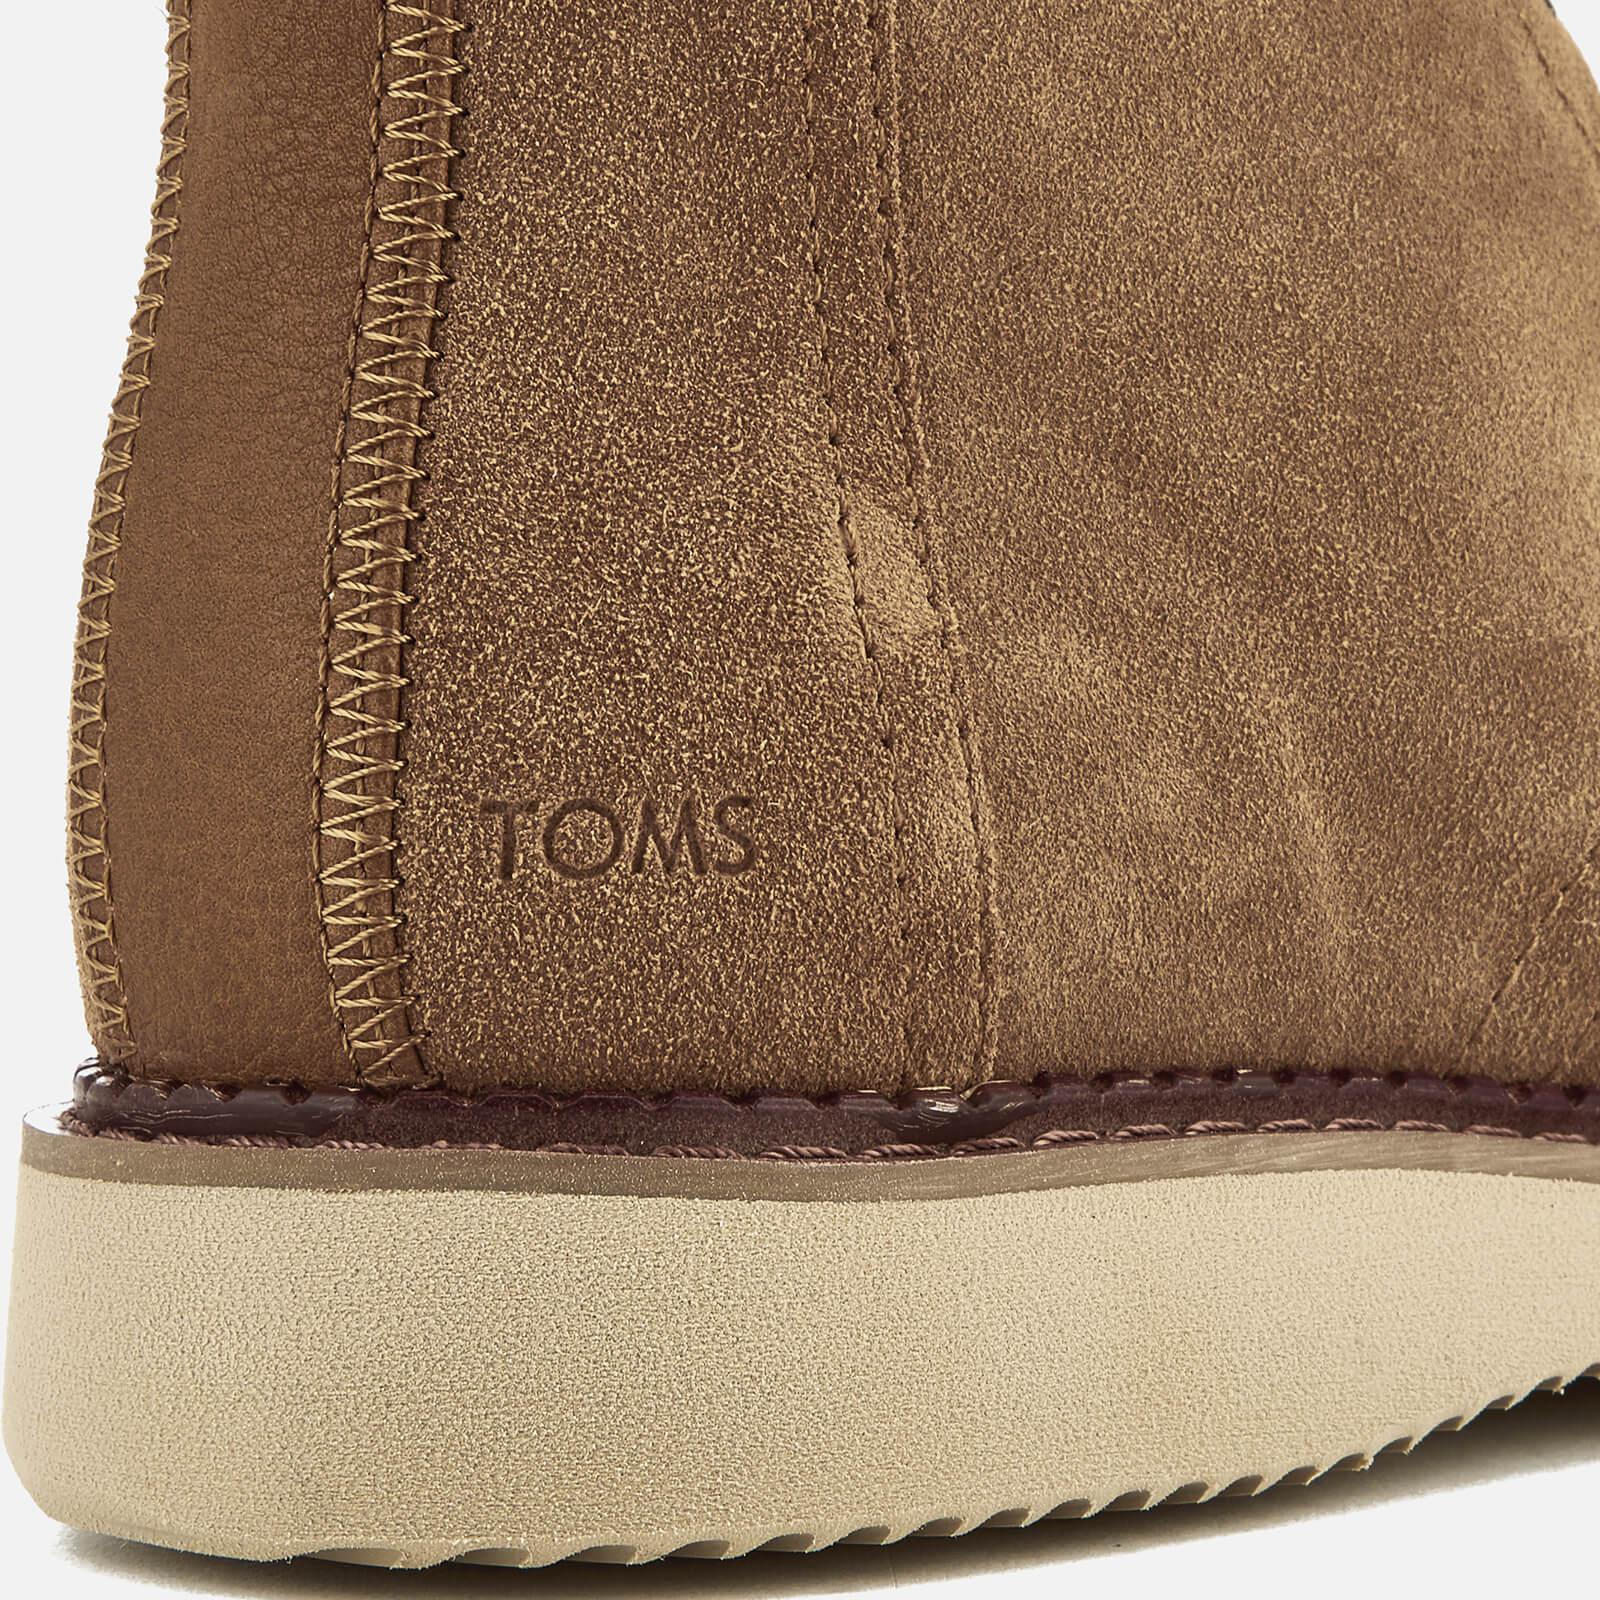 254cac84f2b TOMS - Brown Men s Porter Suede Lace Up Boots for Men - Lyst. View  fullscreen